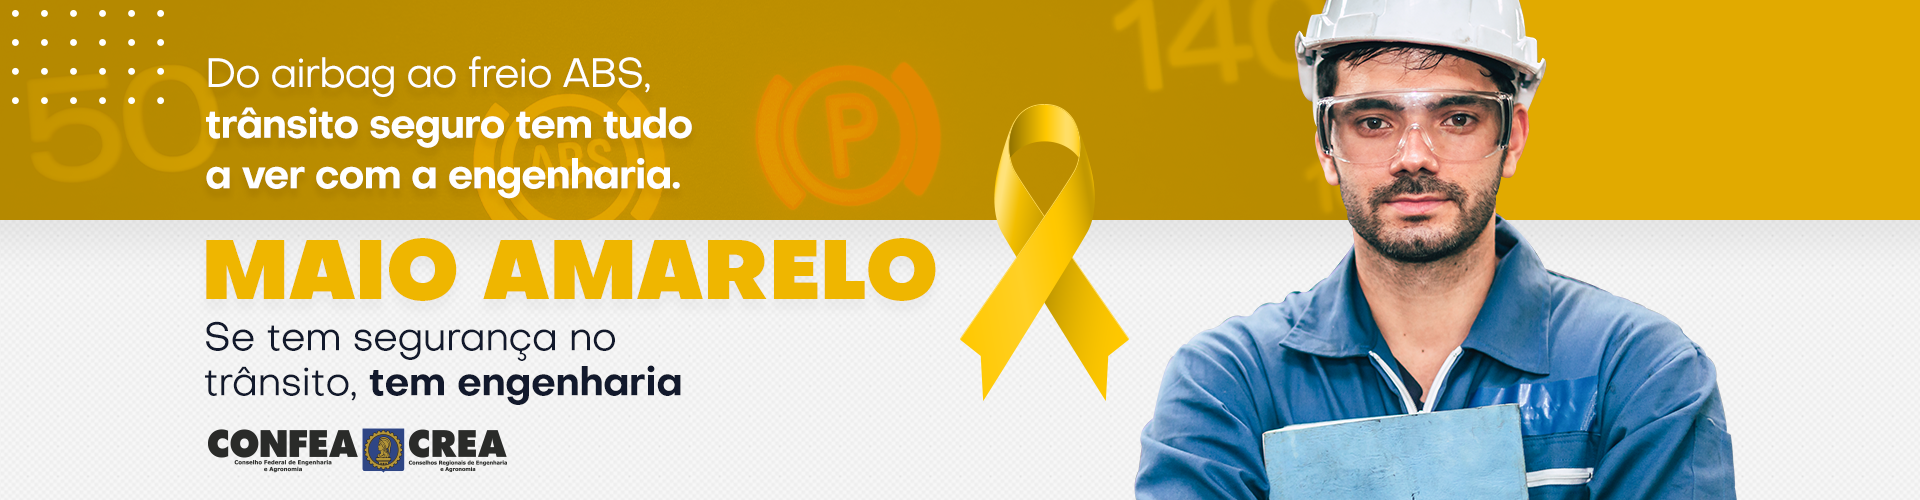 [banner: banner]  - 200421-Confea-Banner-Maio-Amarelo-2.png